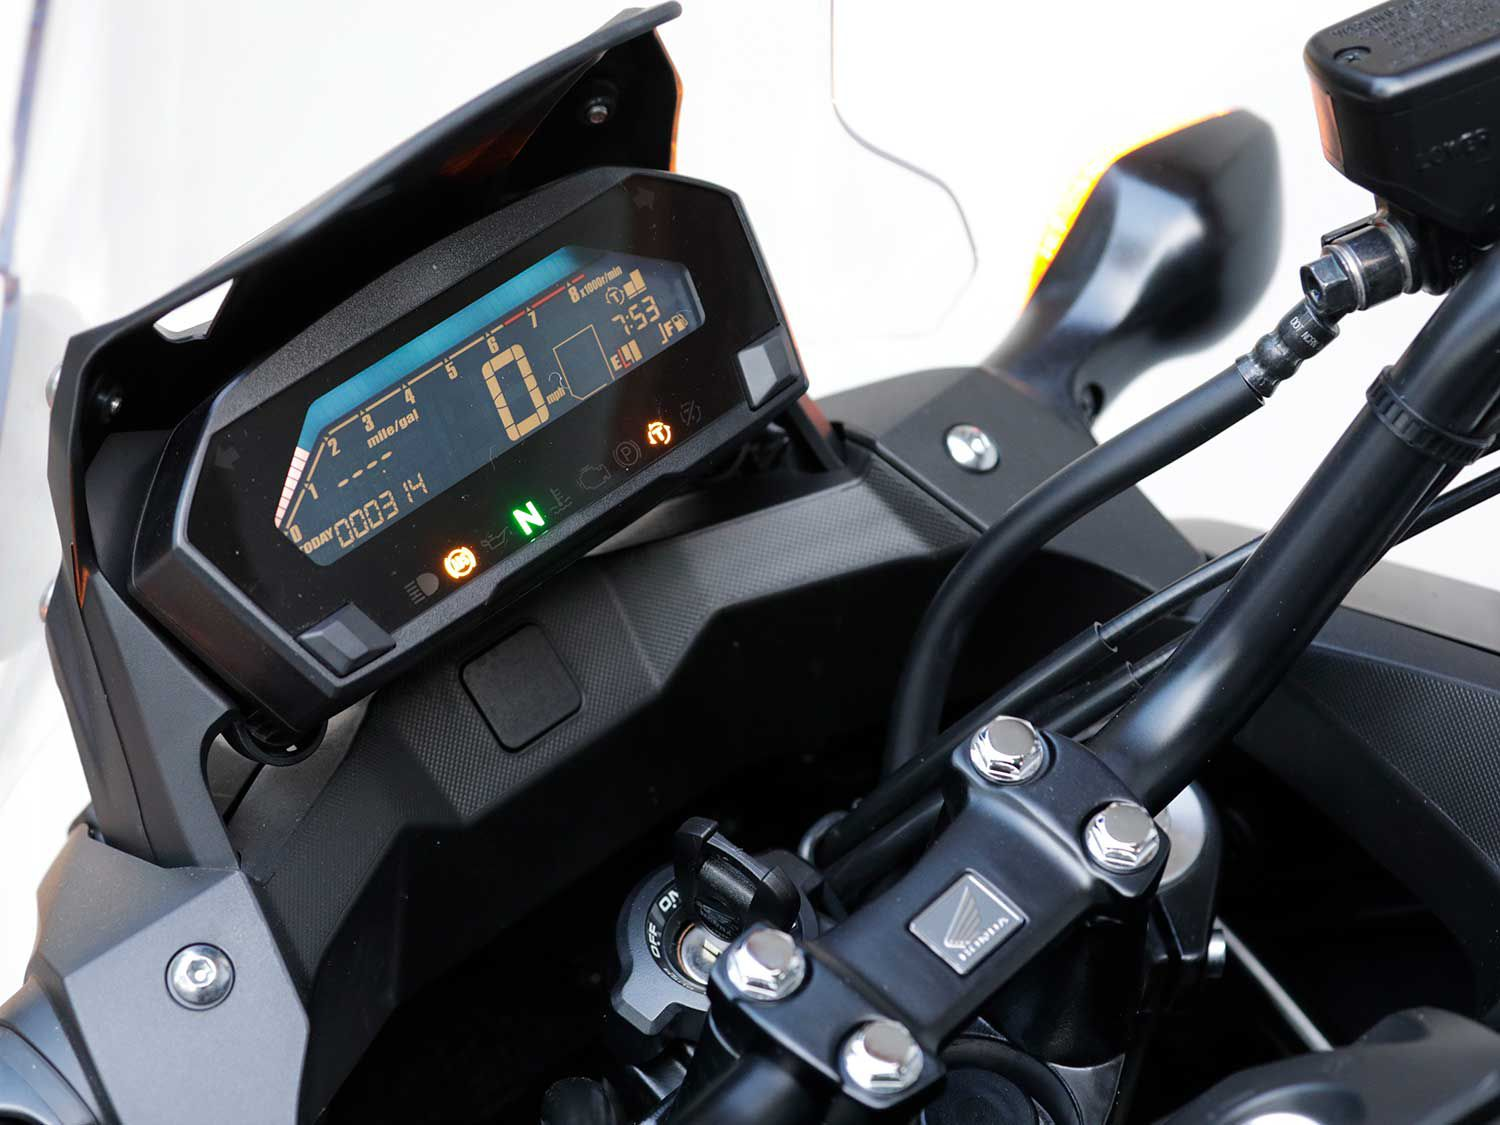 Instrumentation is a tad small, however it is easy to read while riding and includes all of the necessary information needed during rides.